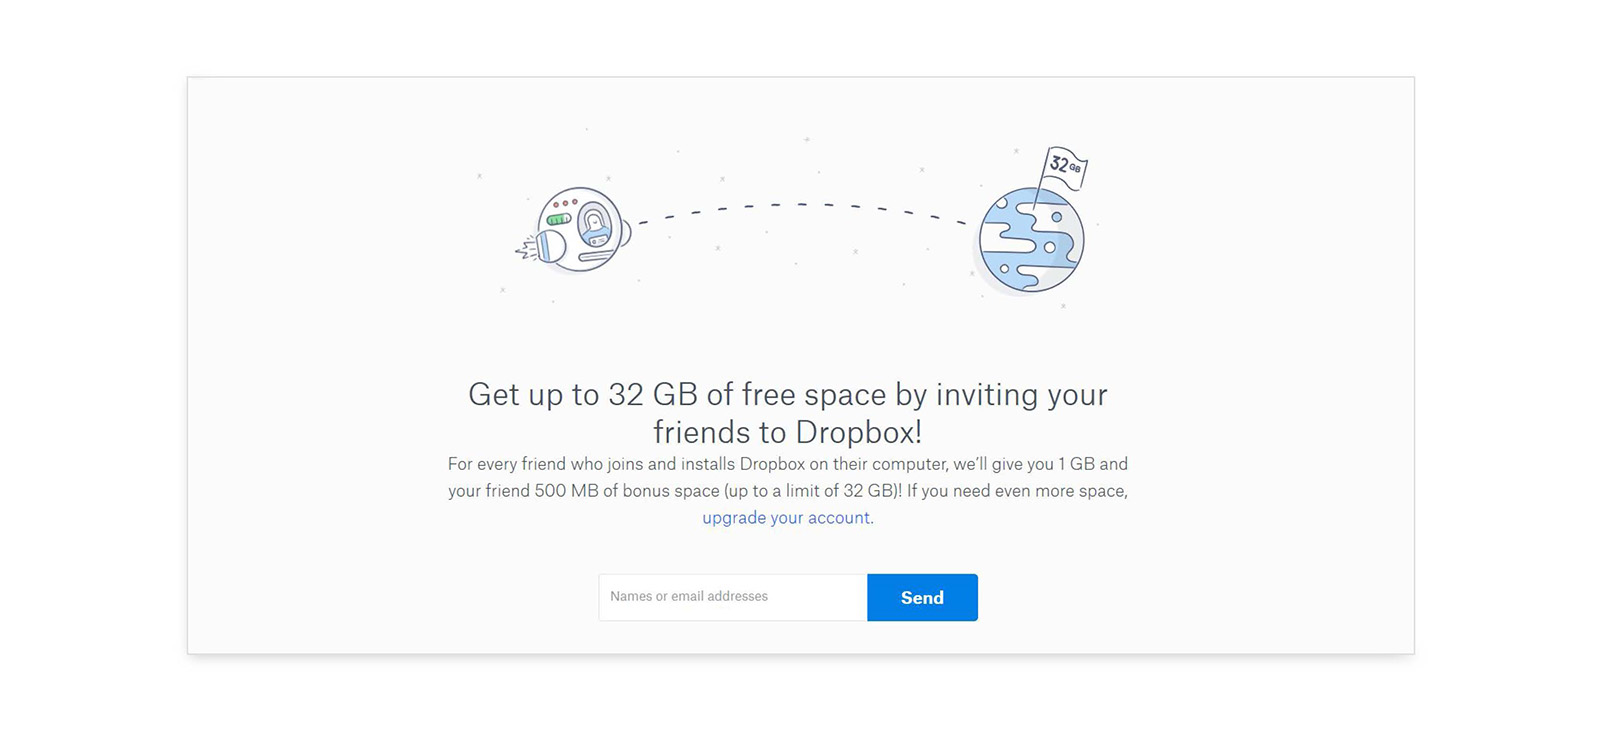 Dropbox-referral